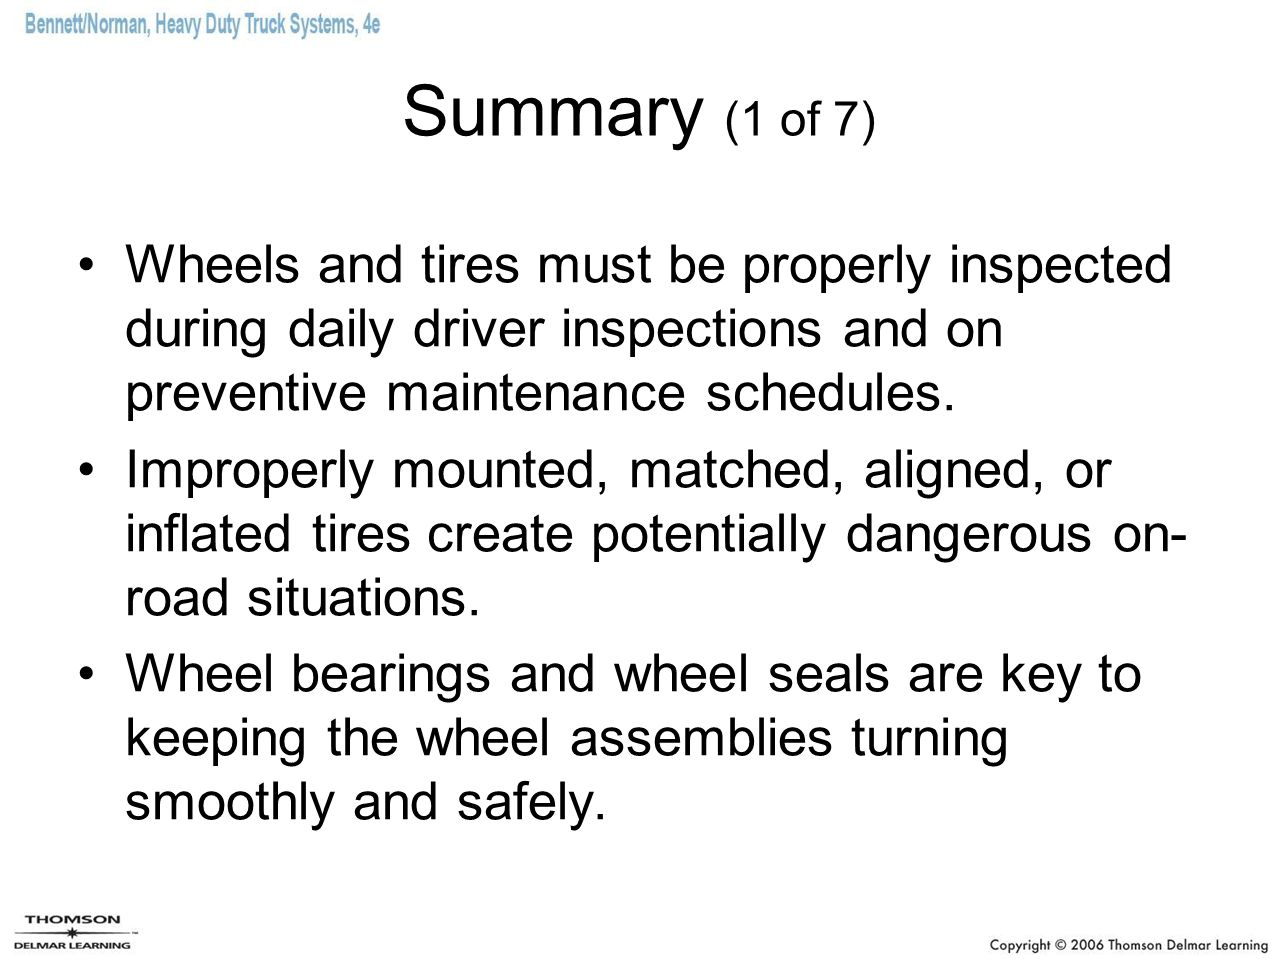 Summary (1 of 7) Wheels and tires must be properly inspected during daily driver inspections and on preventive maintenance schedules.